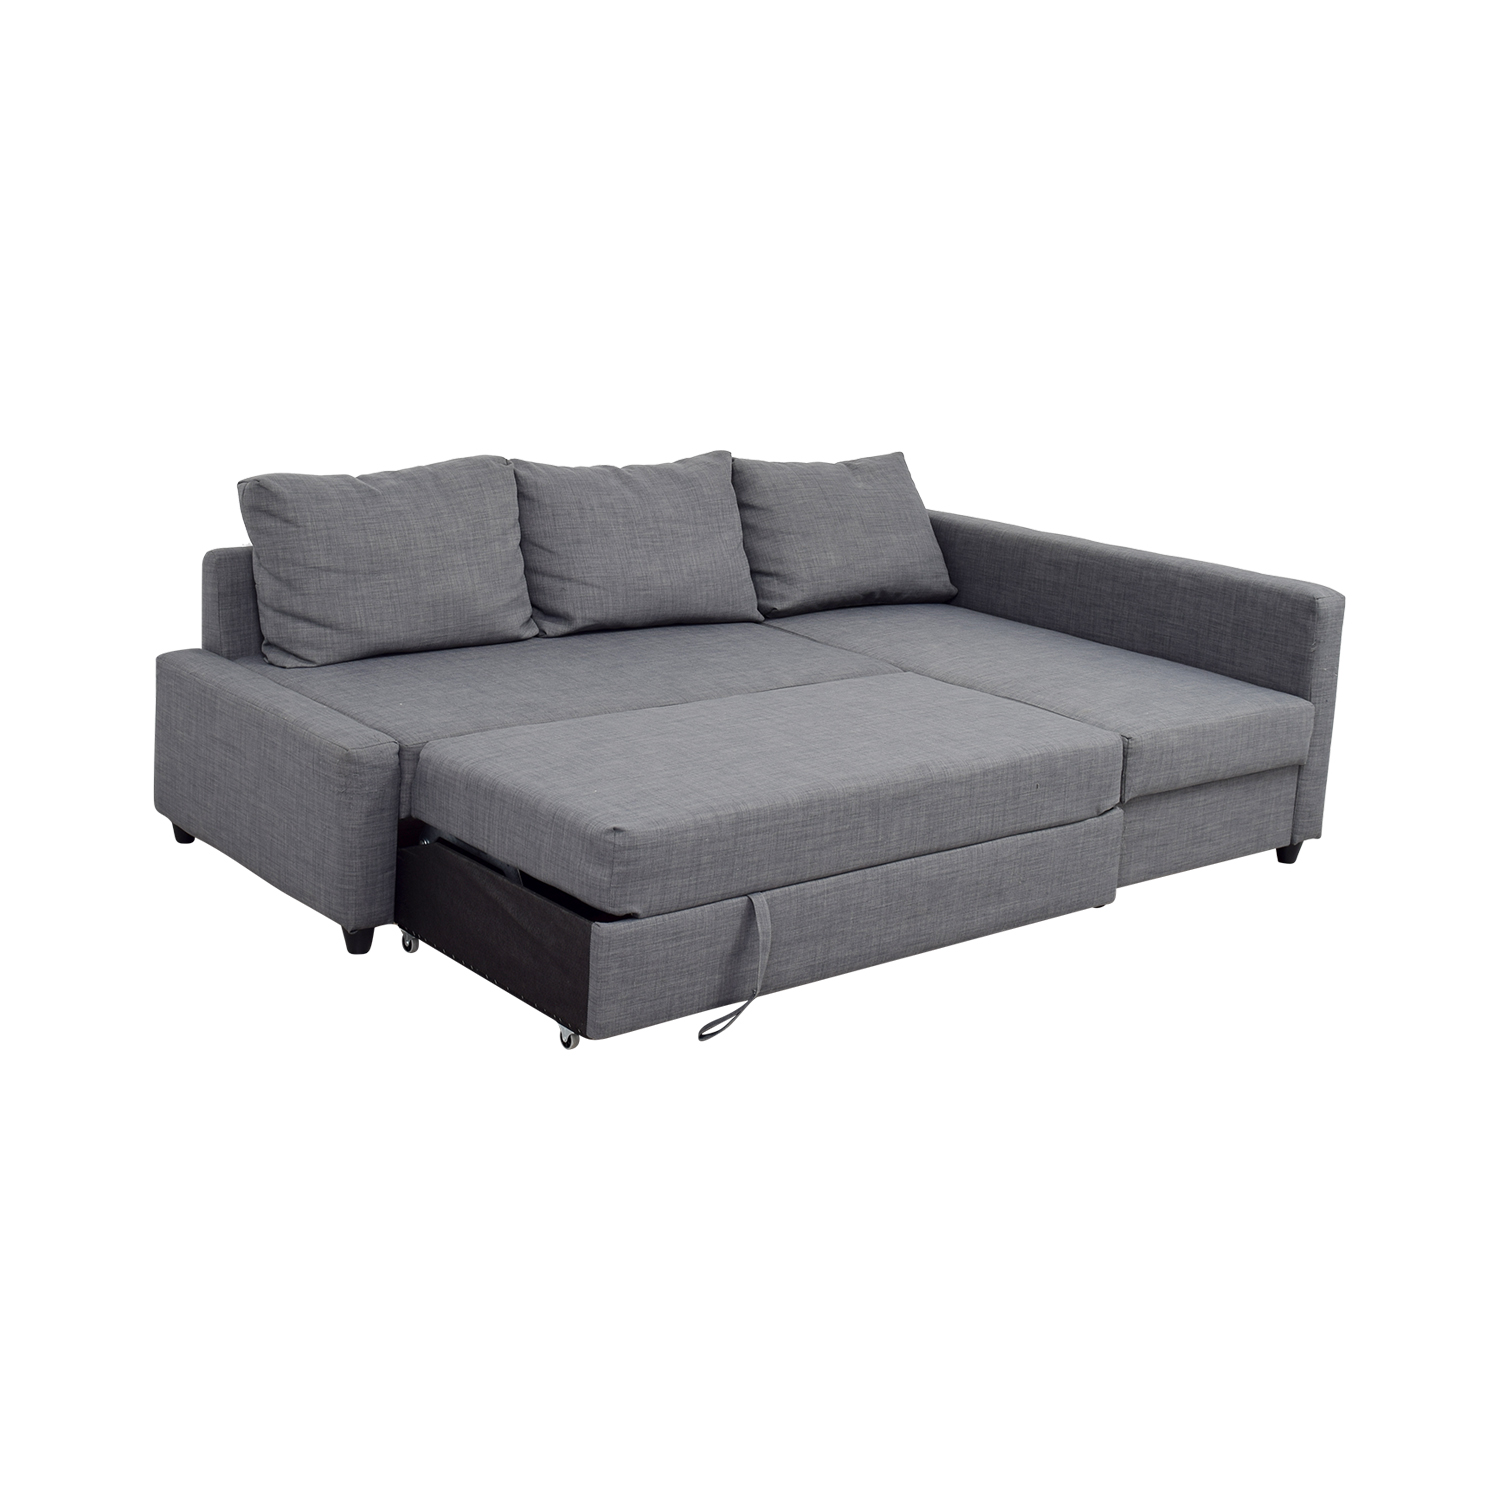 41 off ikea ikea grey sleeper chaise sectional sofas